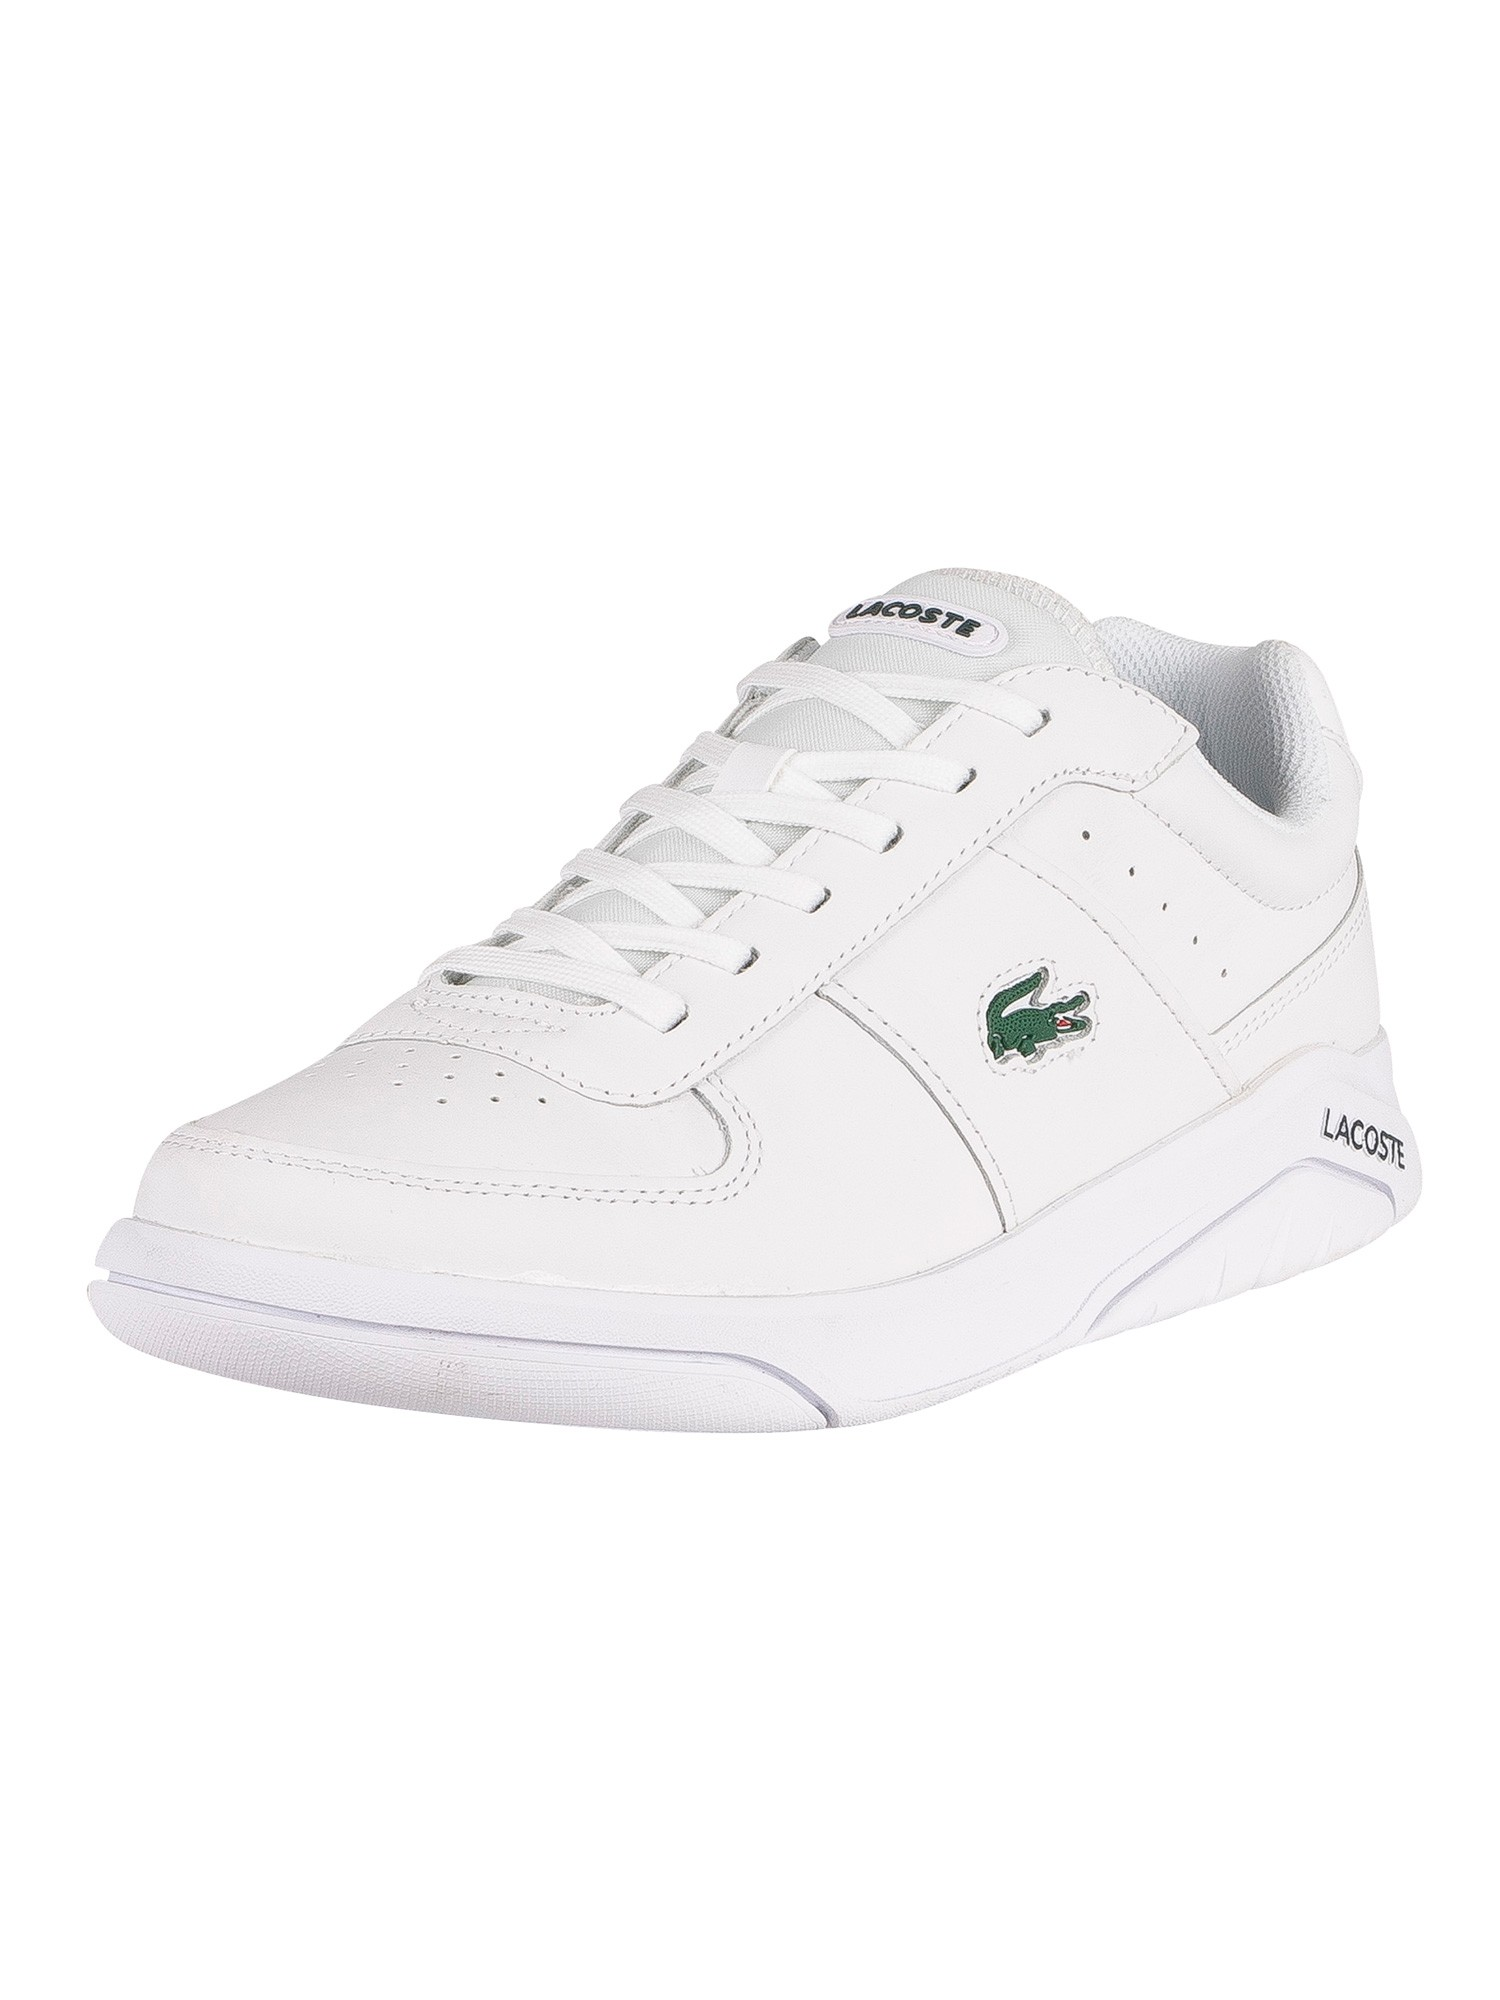 Game Advance 0121 1 SMA Leather Trainers